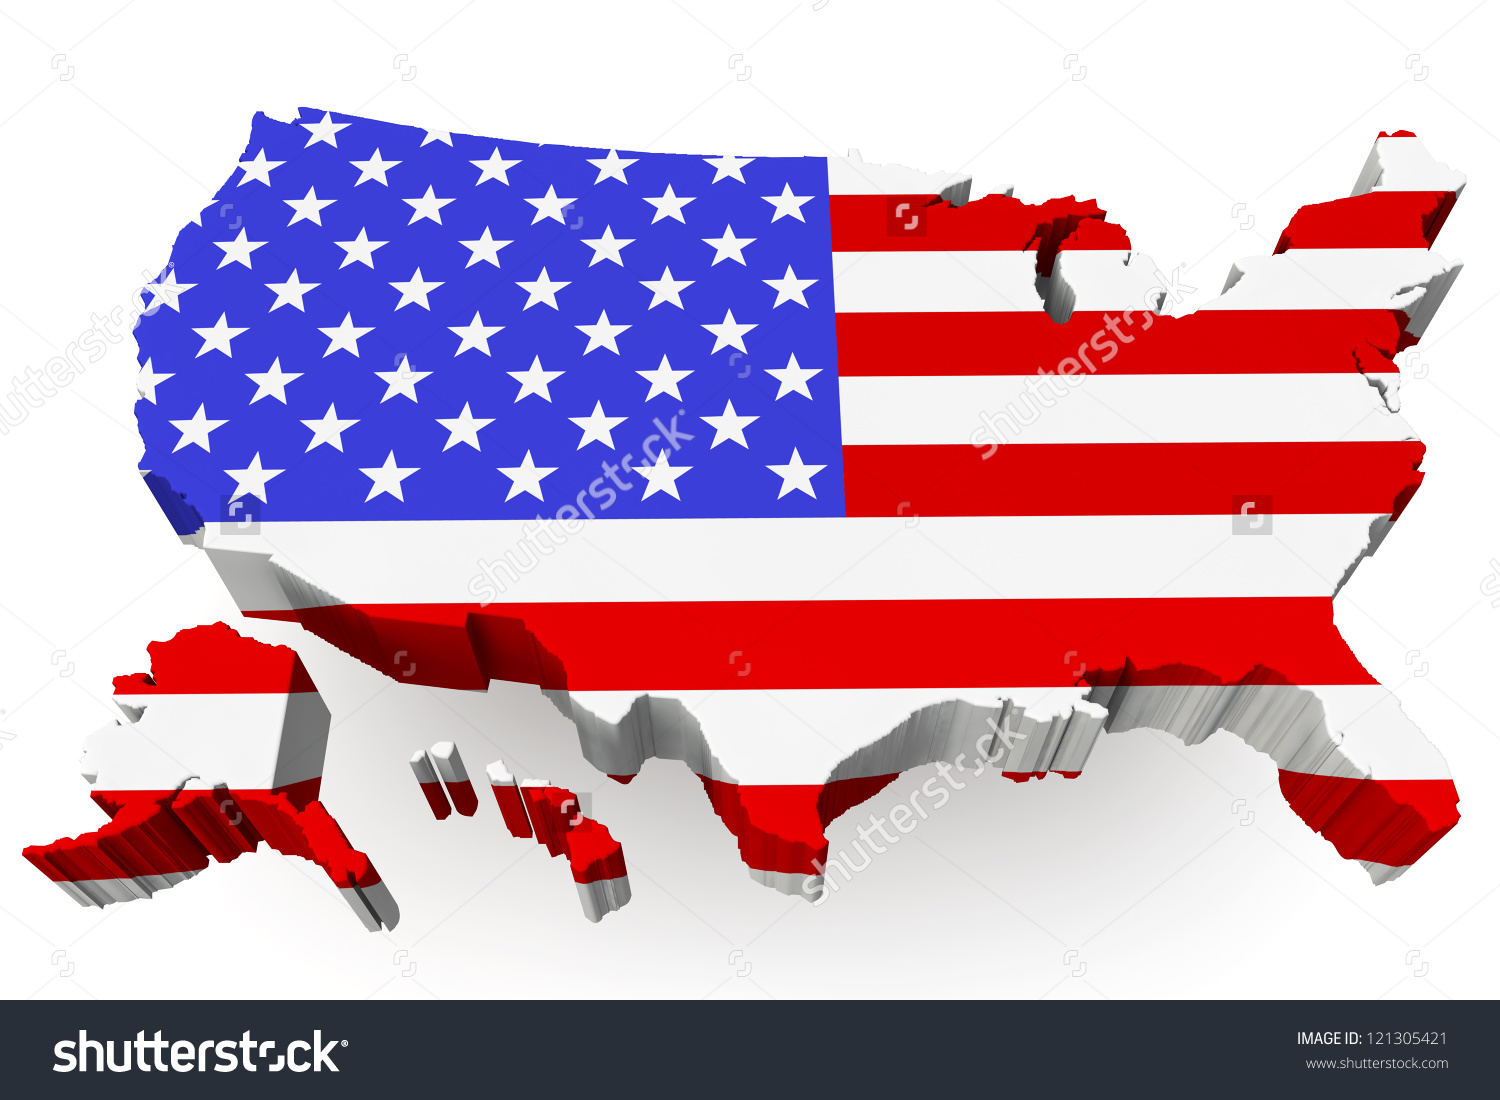 Us map flag clipart clip art black and white Usa Map Usa Flag On White Stock Illustration 121305421 - Shutterstock clip art black and white